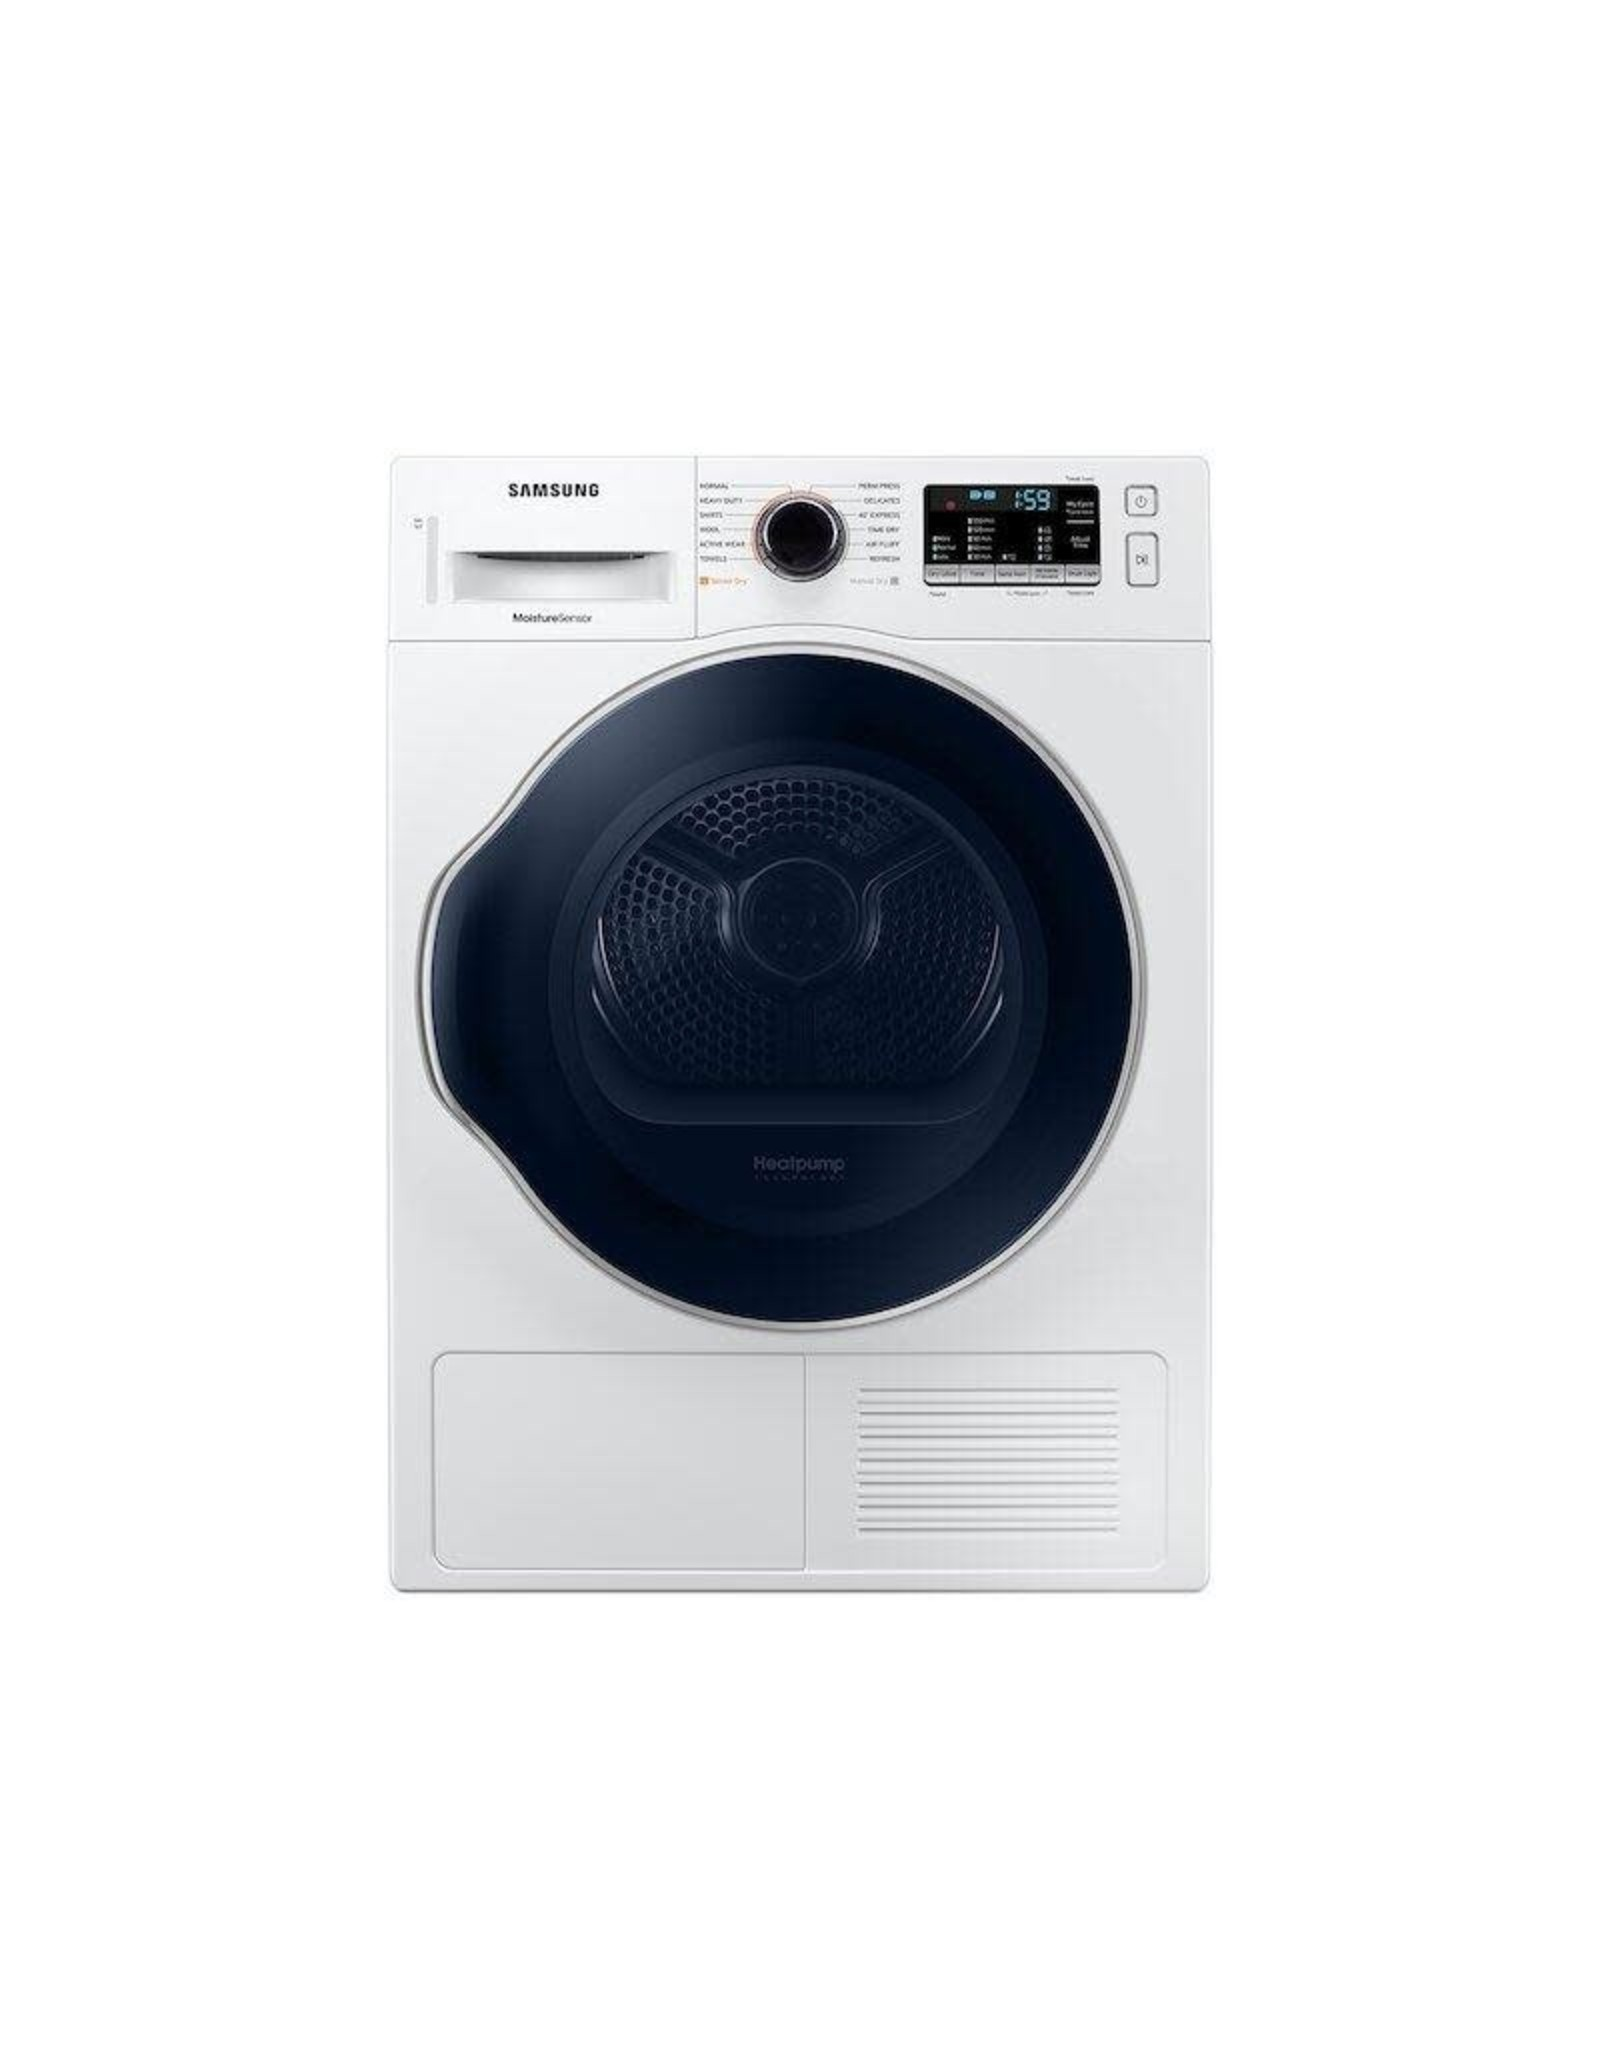 SAMSUNG Samsung 4.0 cu. ft. Capacity White 24 Stackable Electric Ventless Heat Pump Dryer ENERGY STAR Certified